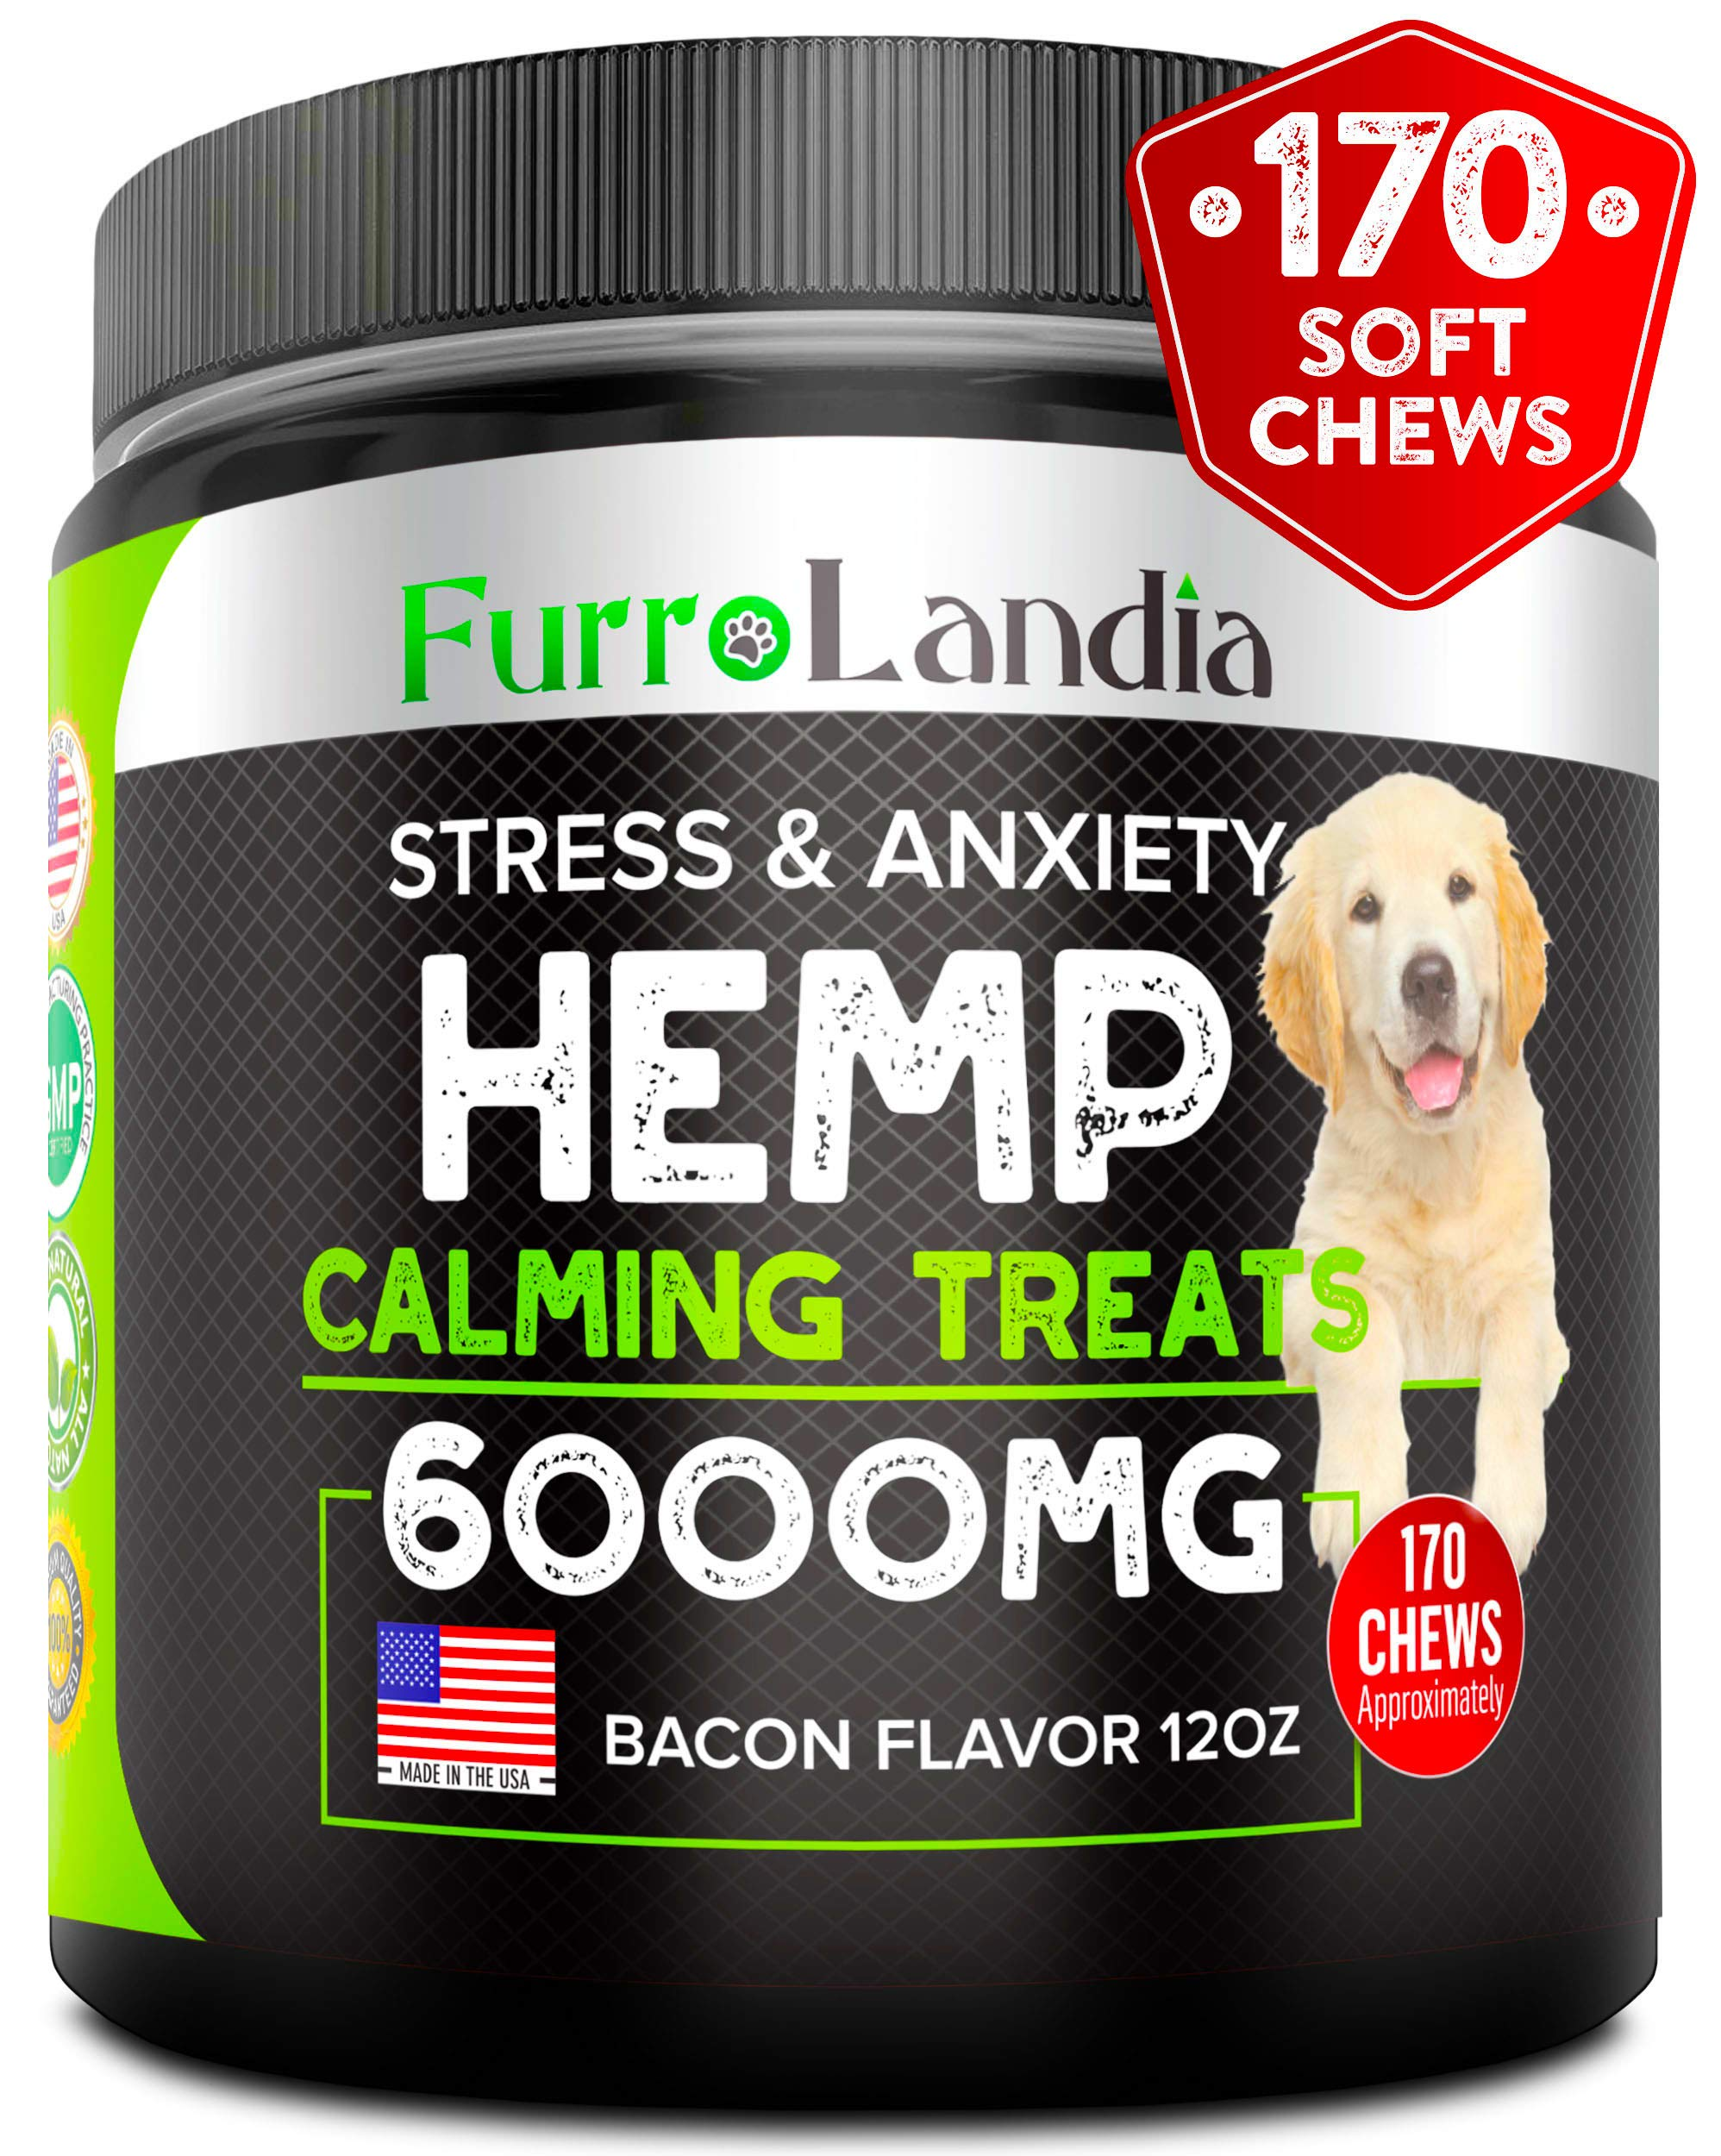 FurroLandia Hemp Calming Treats for Dogs - 170 Soft Chews - Made in USA - Hemp Oil for Dogs - Dog Anxiety Relief - Natural Calming Aid - Stress - Fireworks - Storms - Aggressive Behavior by FurroLandia